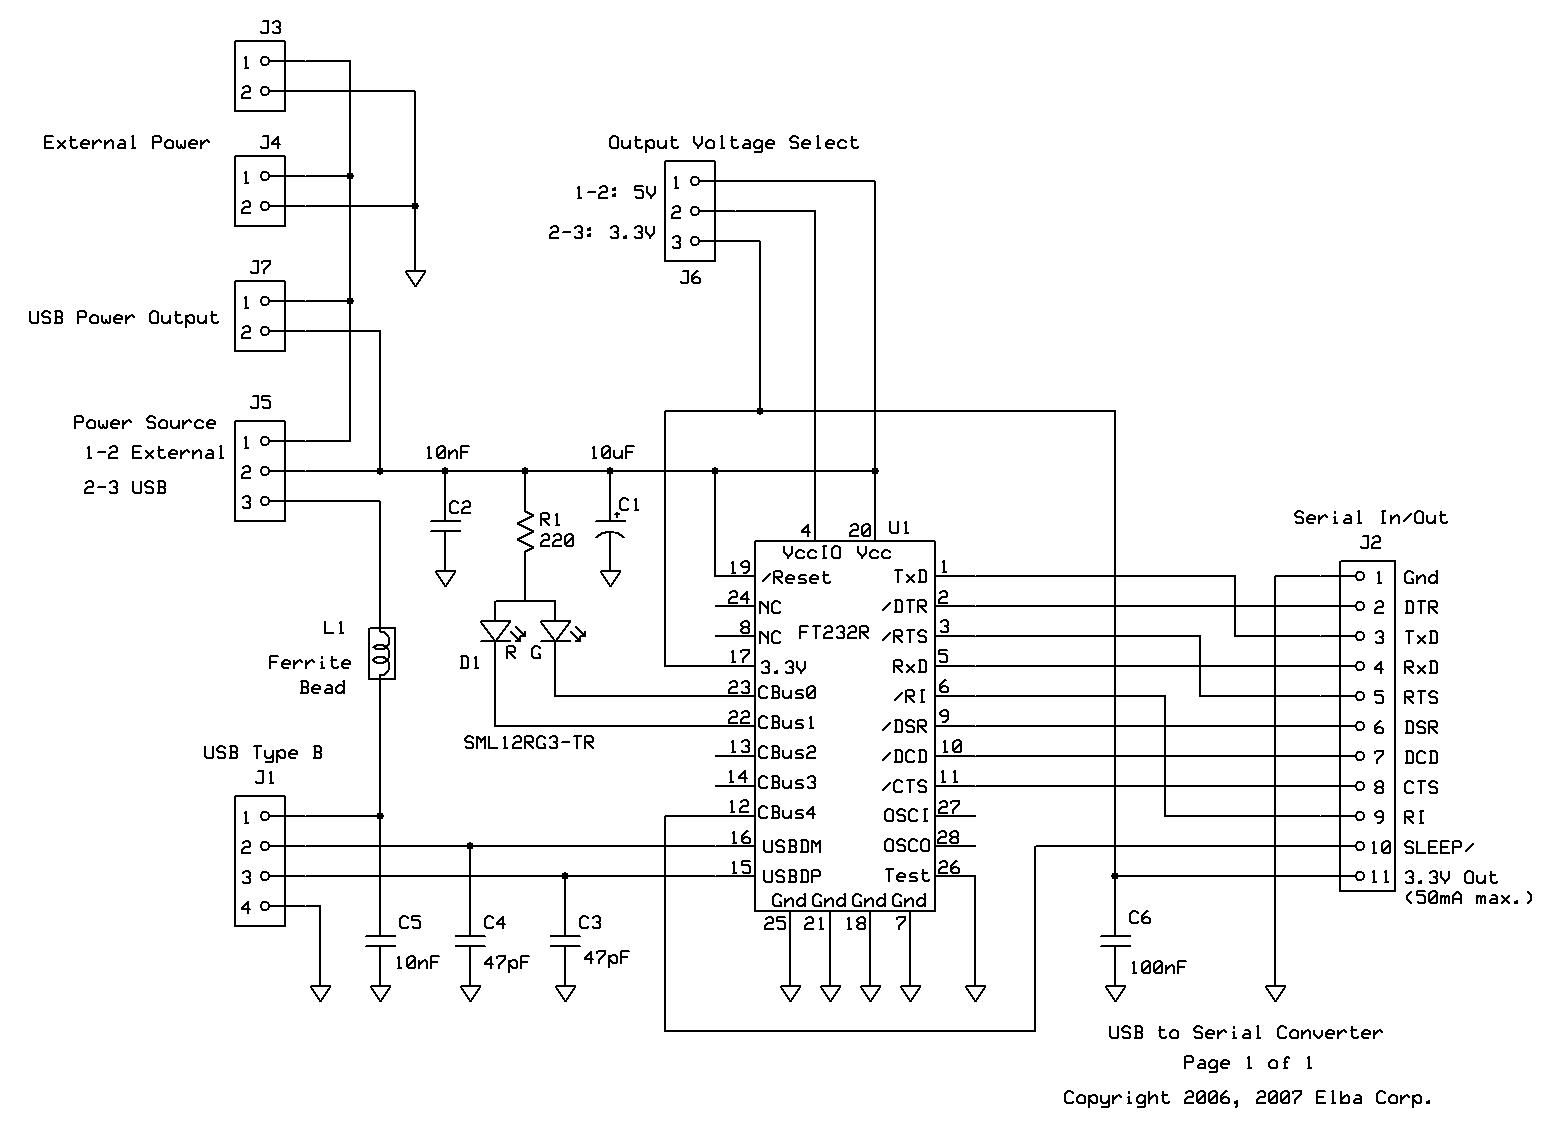 schematic usb ttl interface module reference manual usb type b wiring diagram at bakdesigns.co